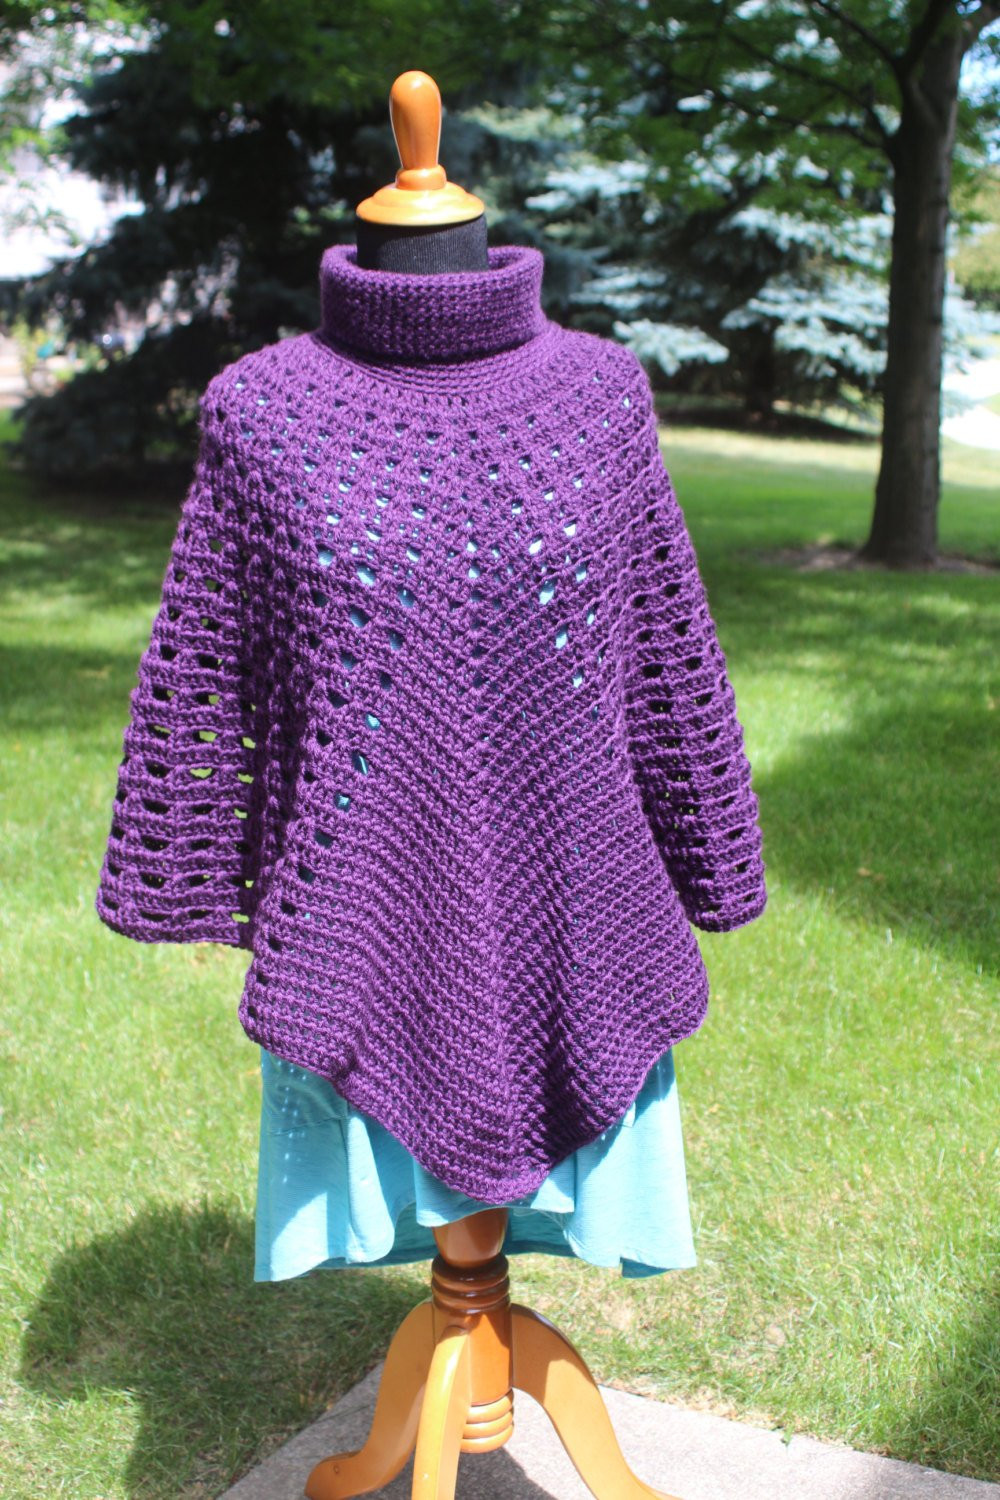 Poncho Crochet Pattern Luxury Turtleneck Poncho Pattern Crochet Poncho Pattern Boho Of Attractive 42 Ideas Poncho Crochet Pattern